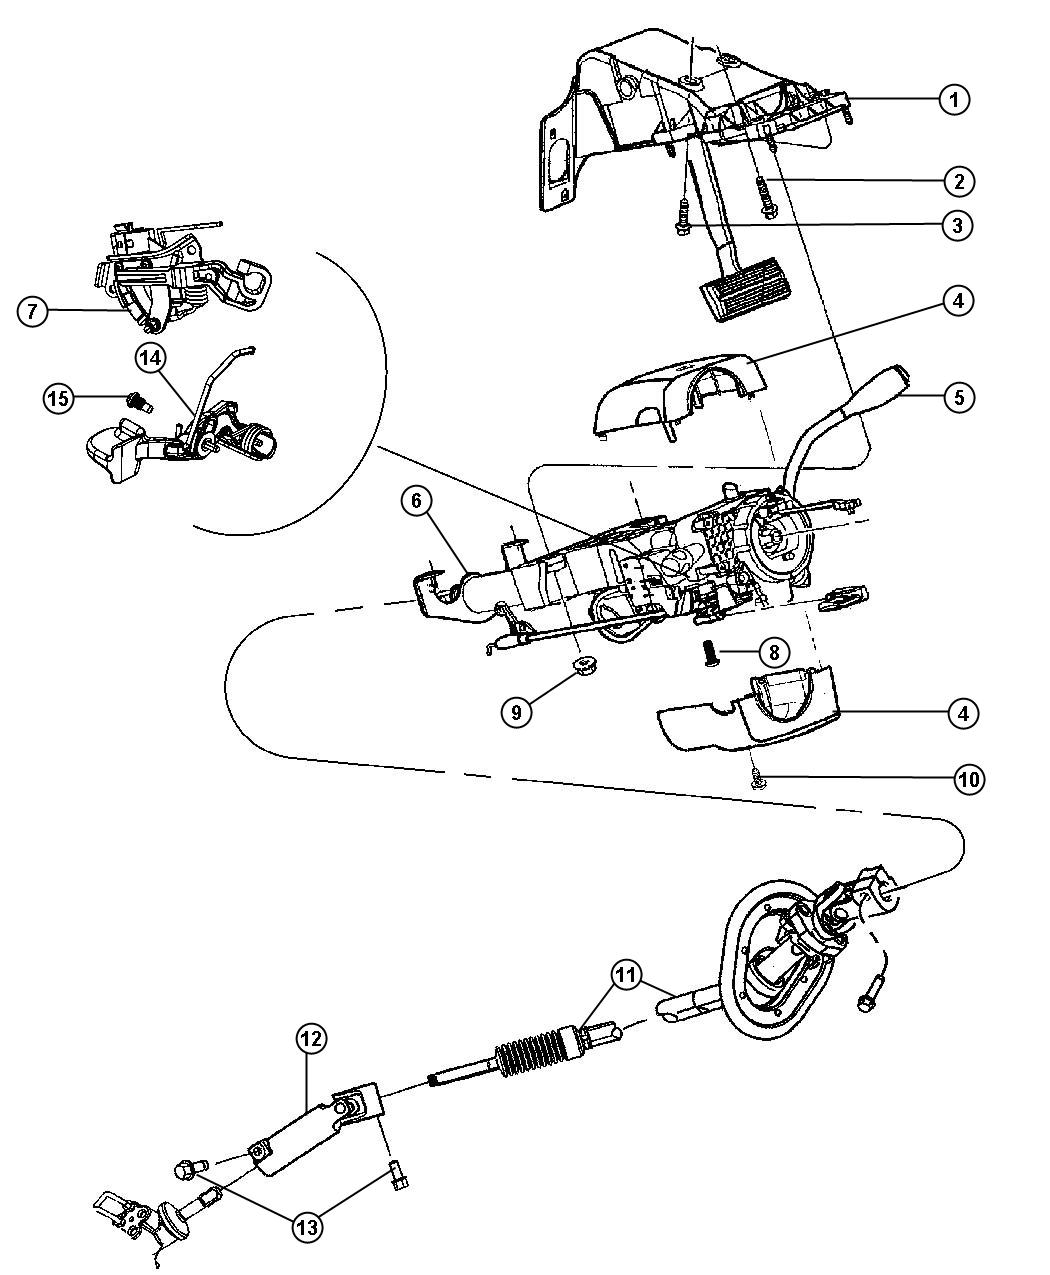 73 dodge steering column diagram html